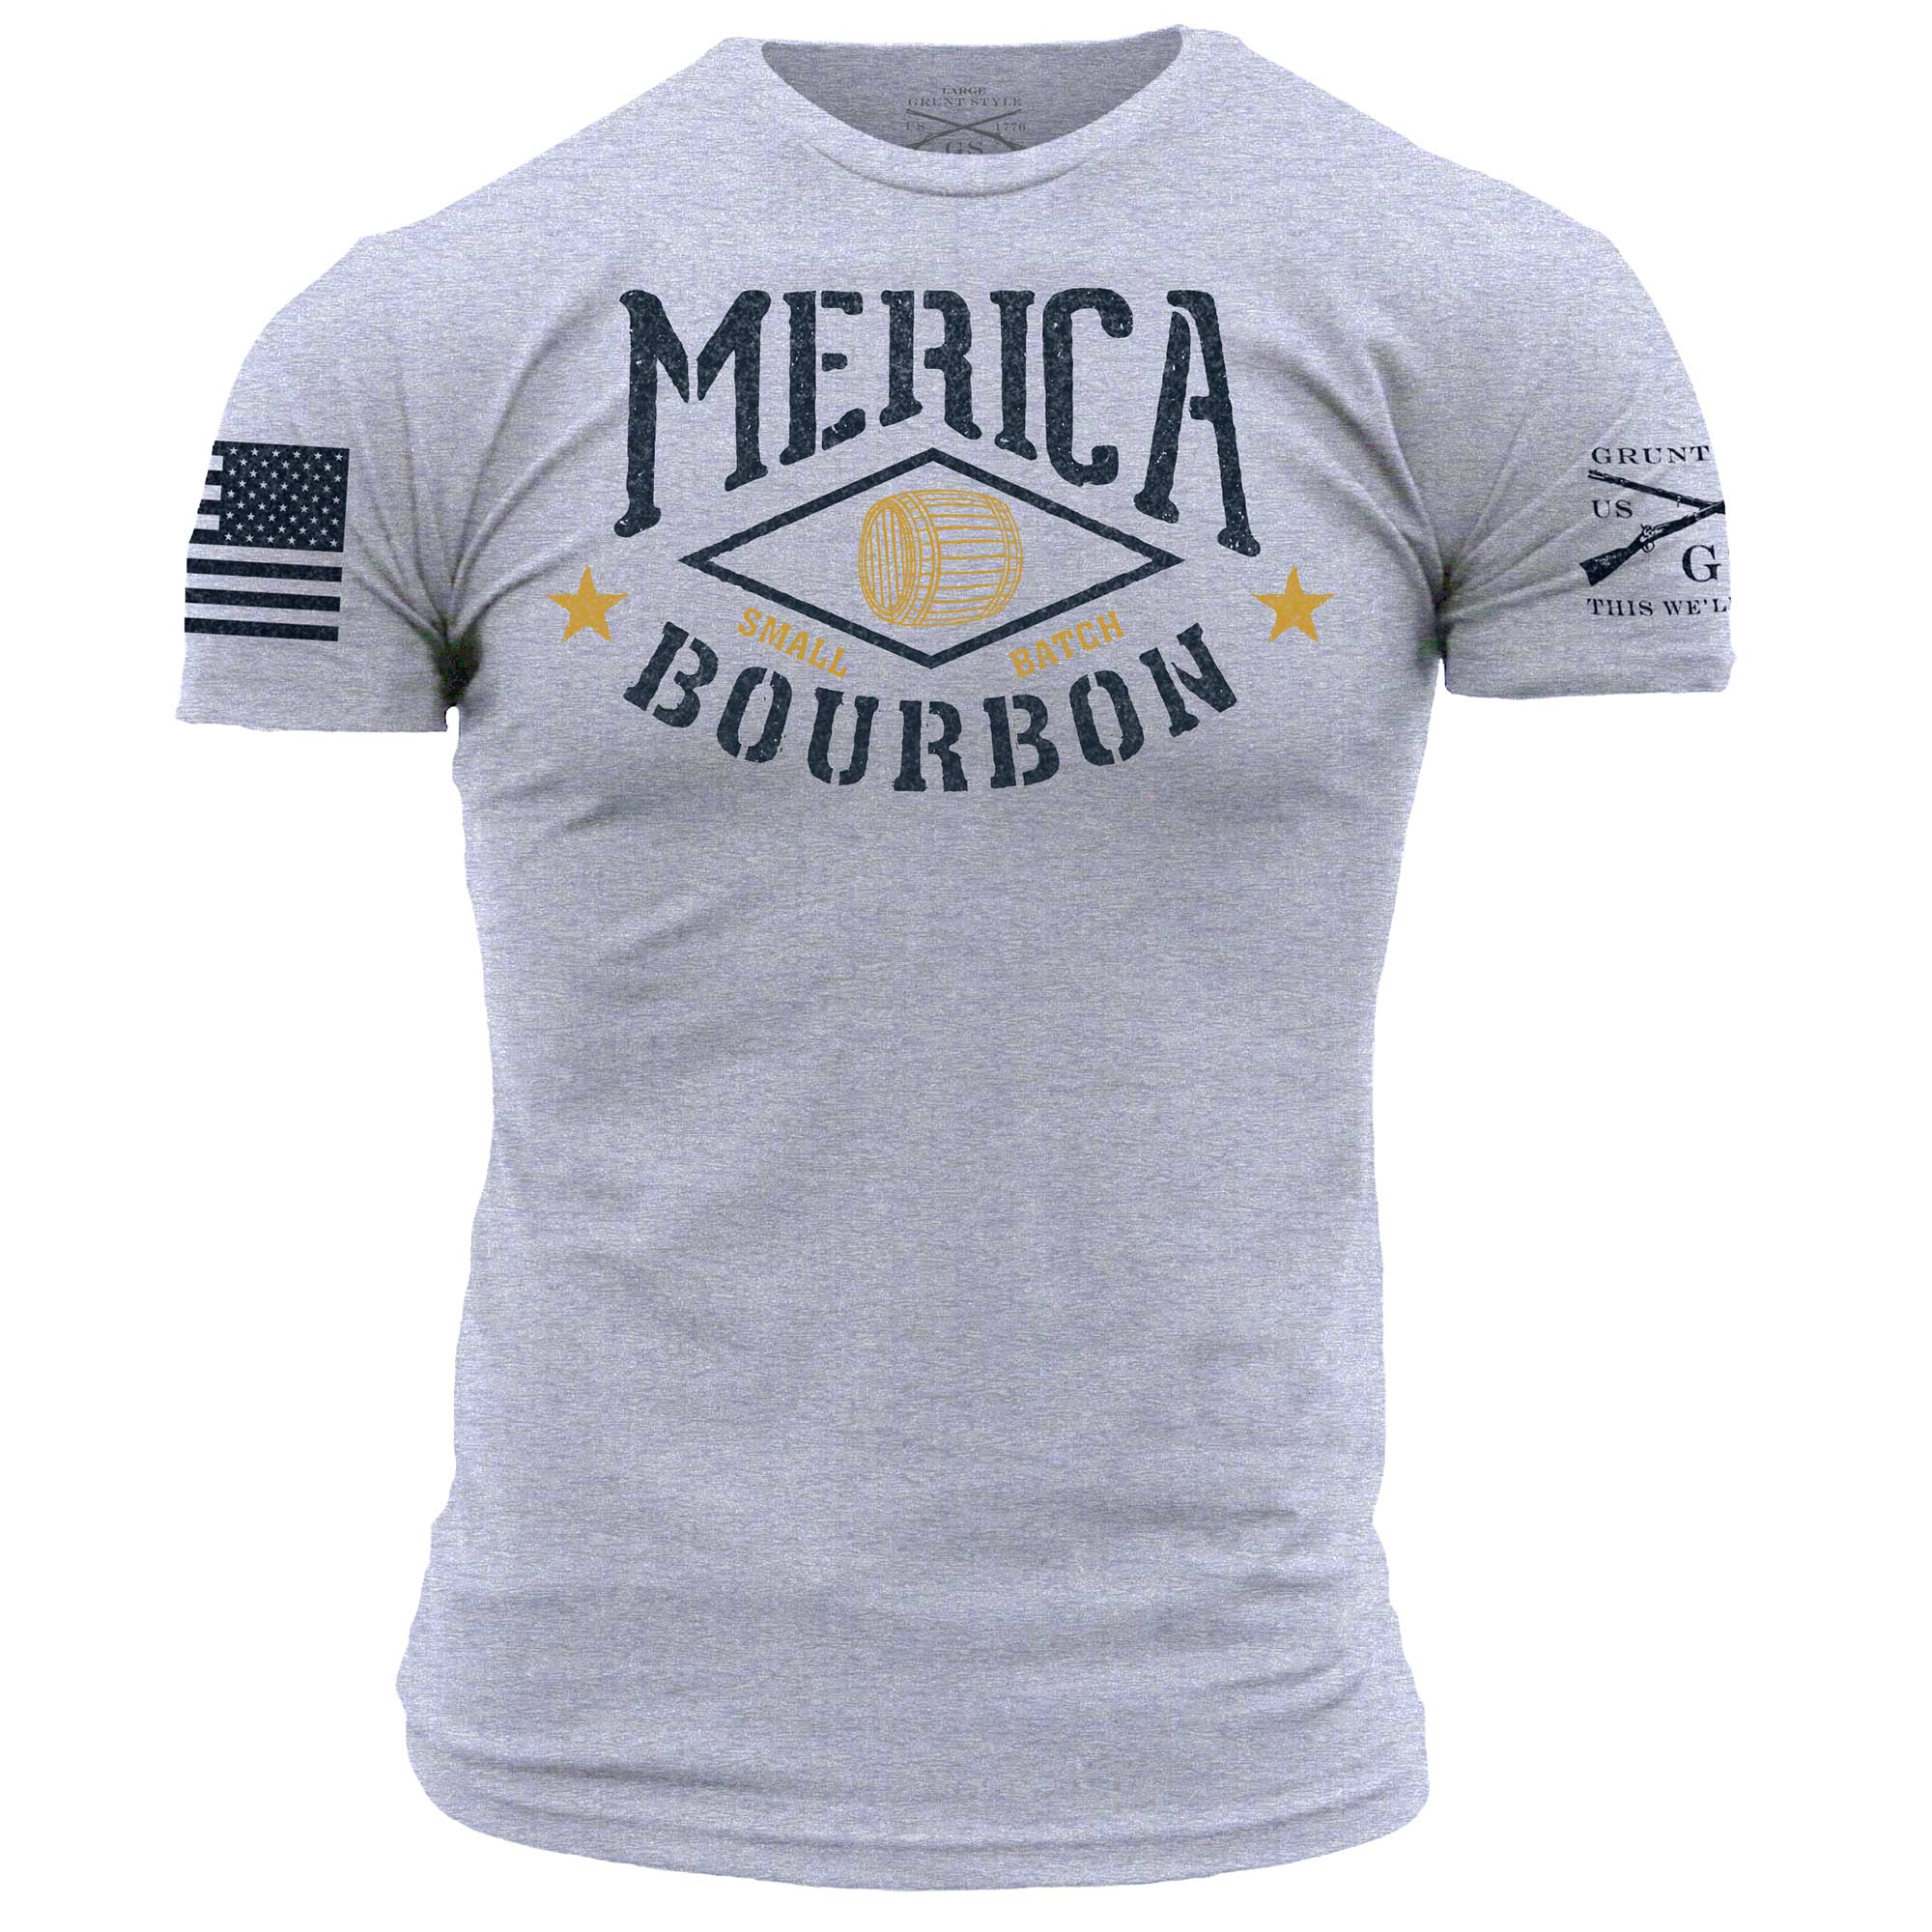 Merica Bourbon Barrel - Heather Grey